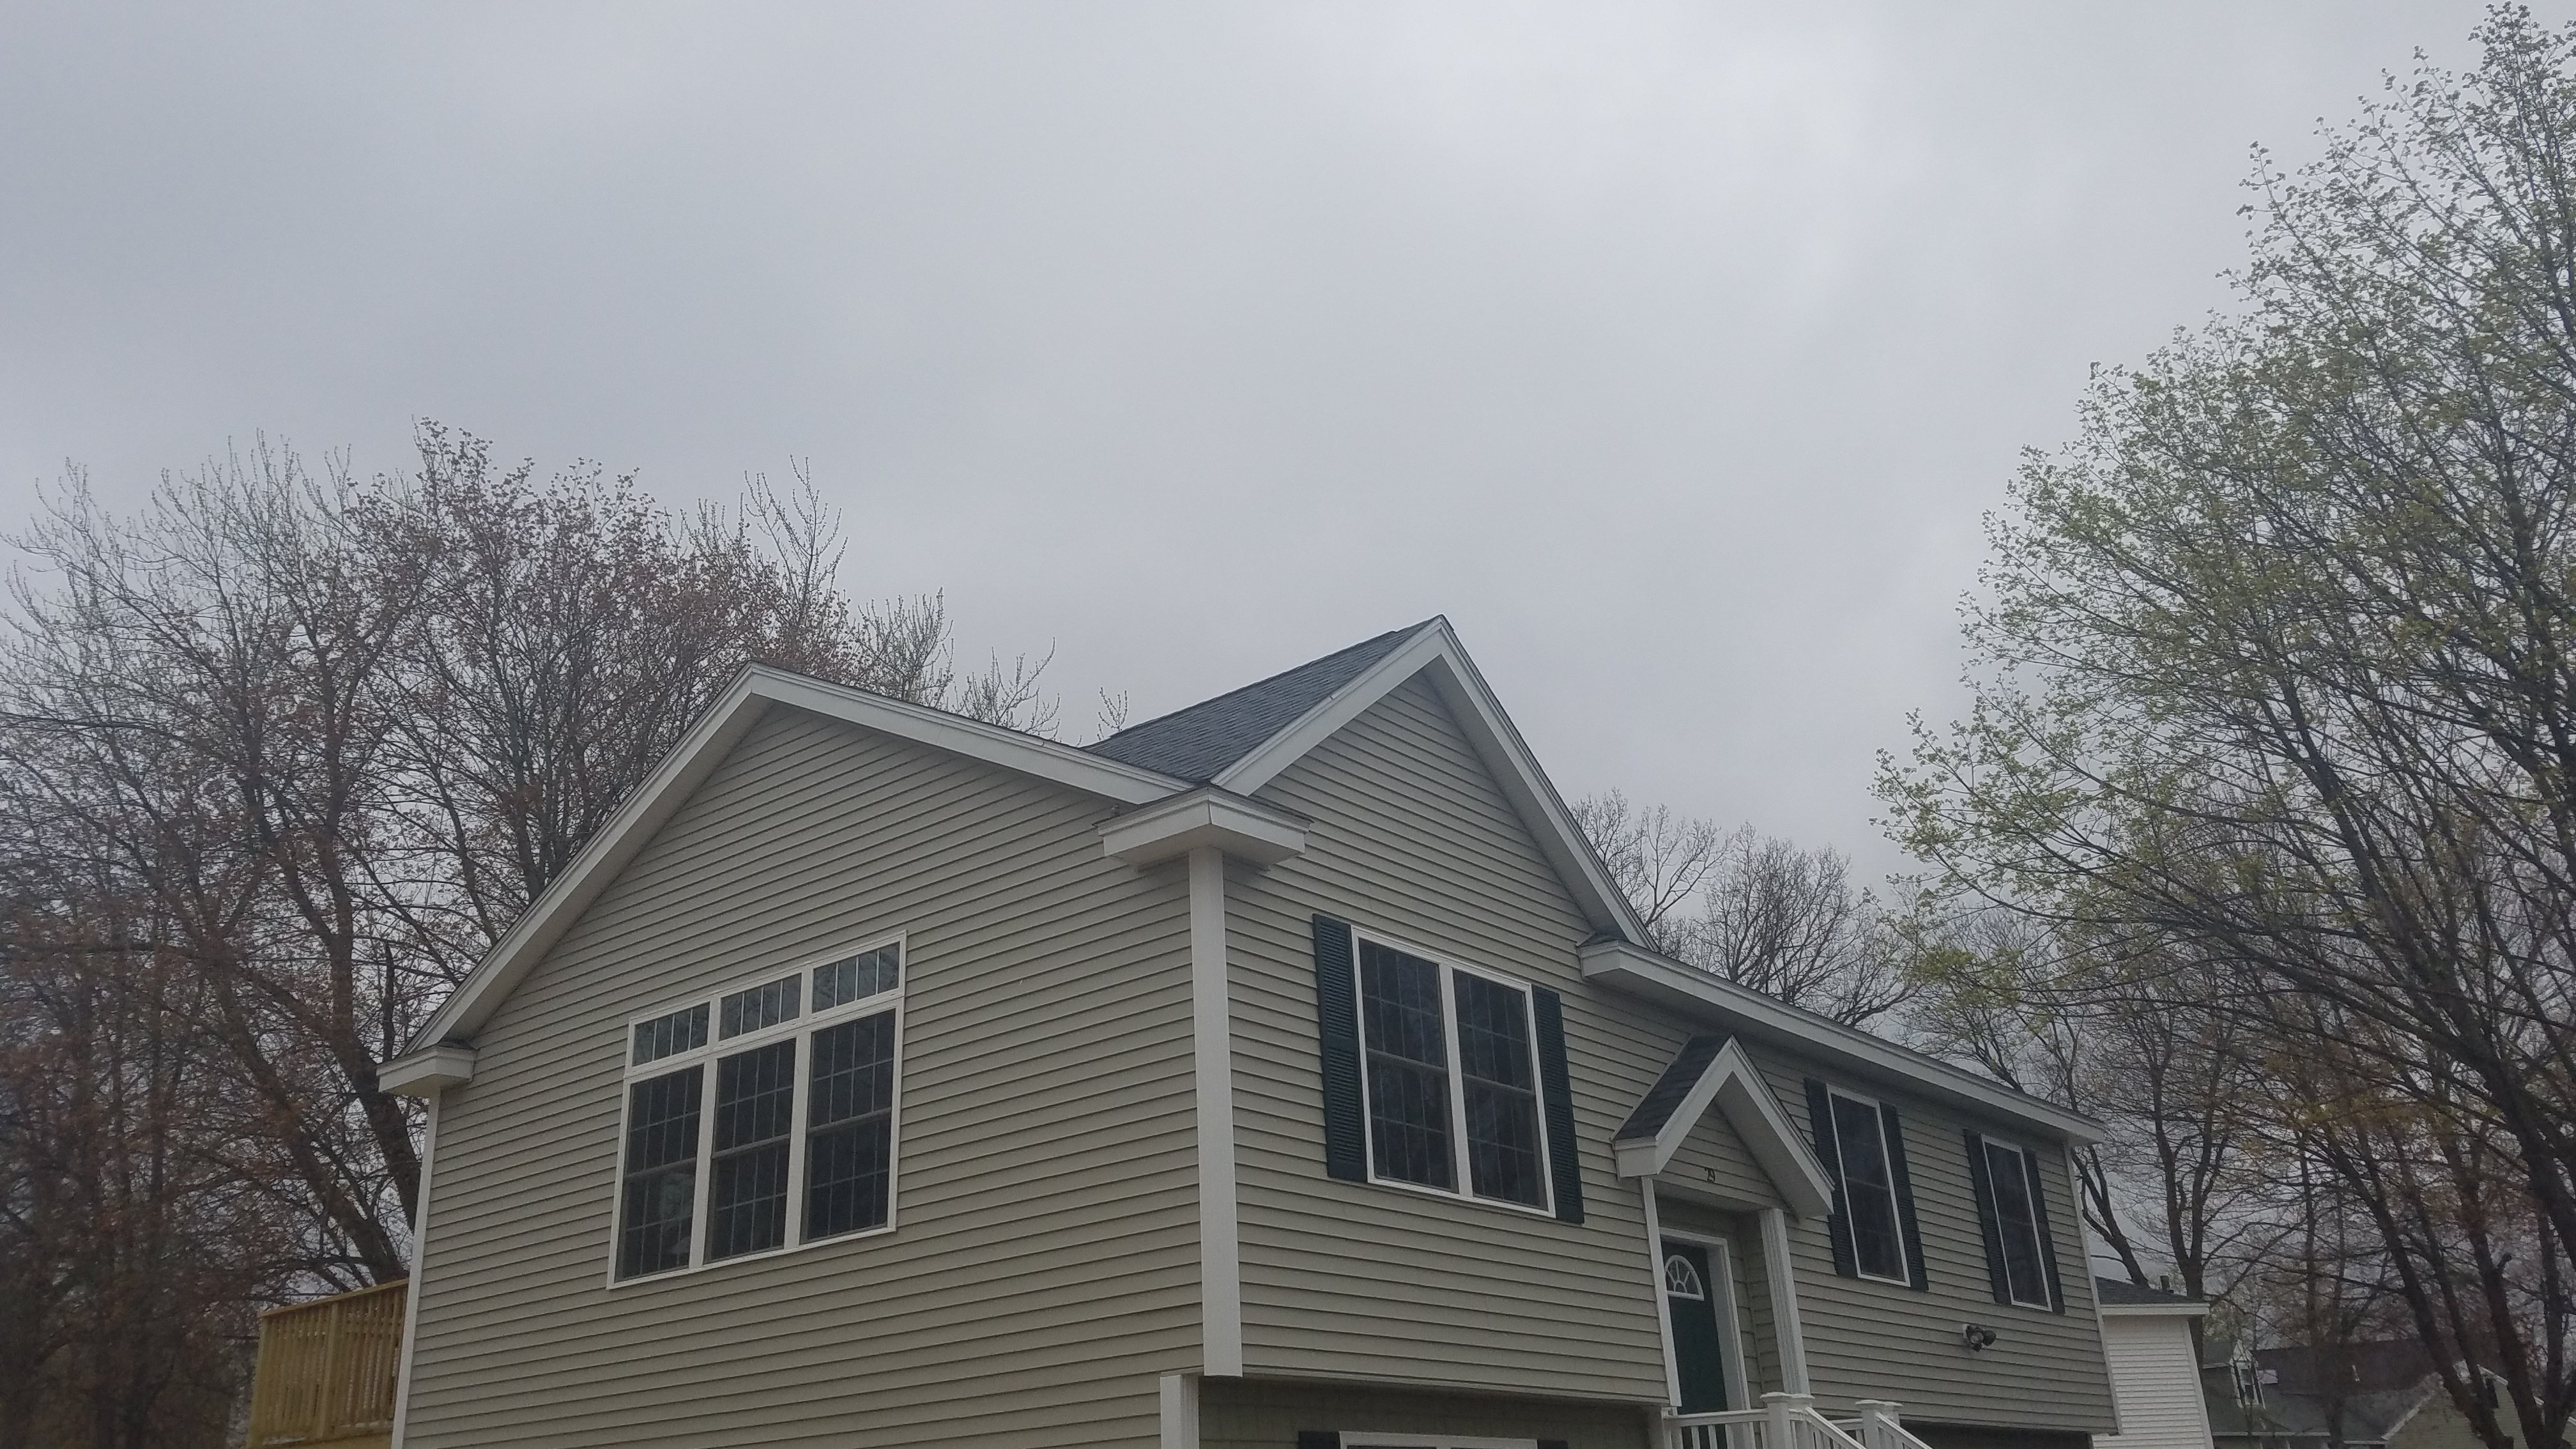 Residential Roof by A.S.A.P. Roofing NH   29 Slade Street, Manchester NH